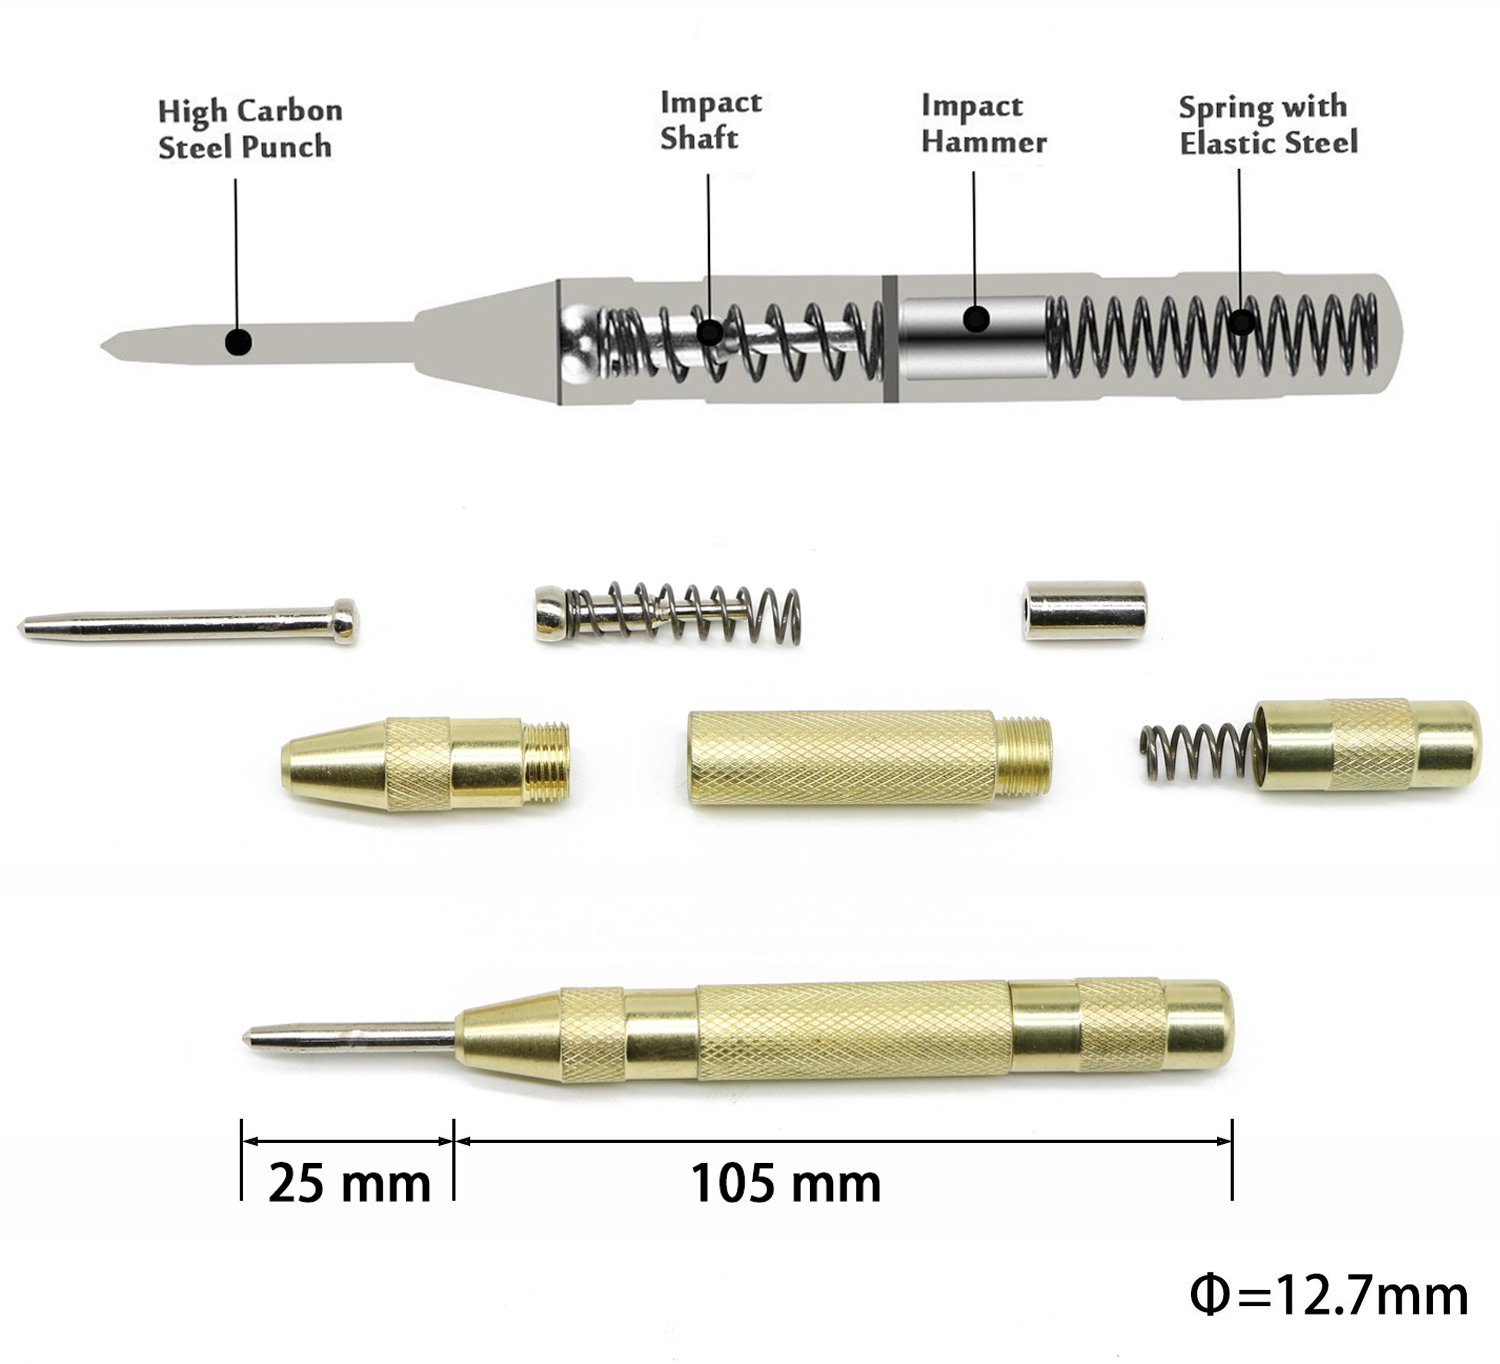 6 Pcs 1//4 HSS Spiral Hex Shank Combination Drill Screw Tap Bit Set M3-M10 with Automatic Spring Loaded Center Punch Tool